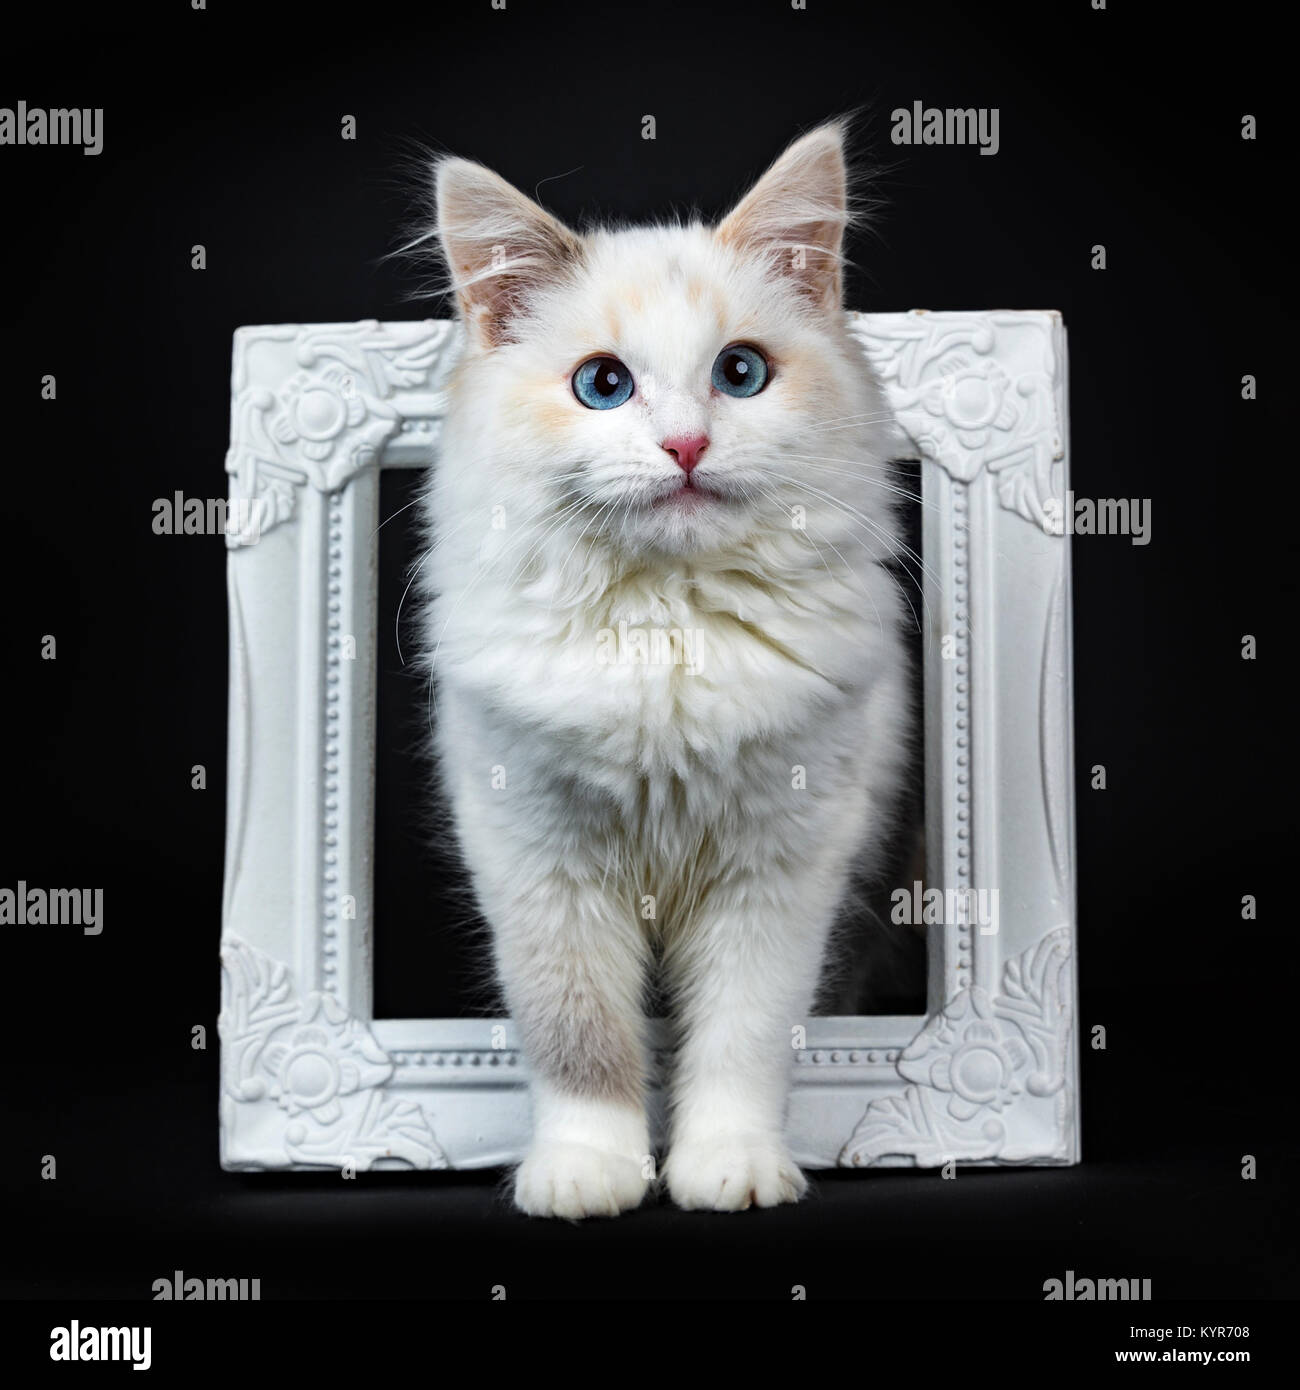 Blue eyed ragdoll cat / kitten standing in photoframe isolated on black background facing camera - Stock Image